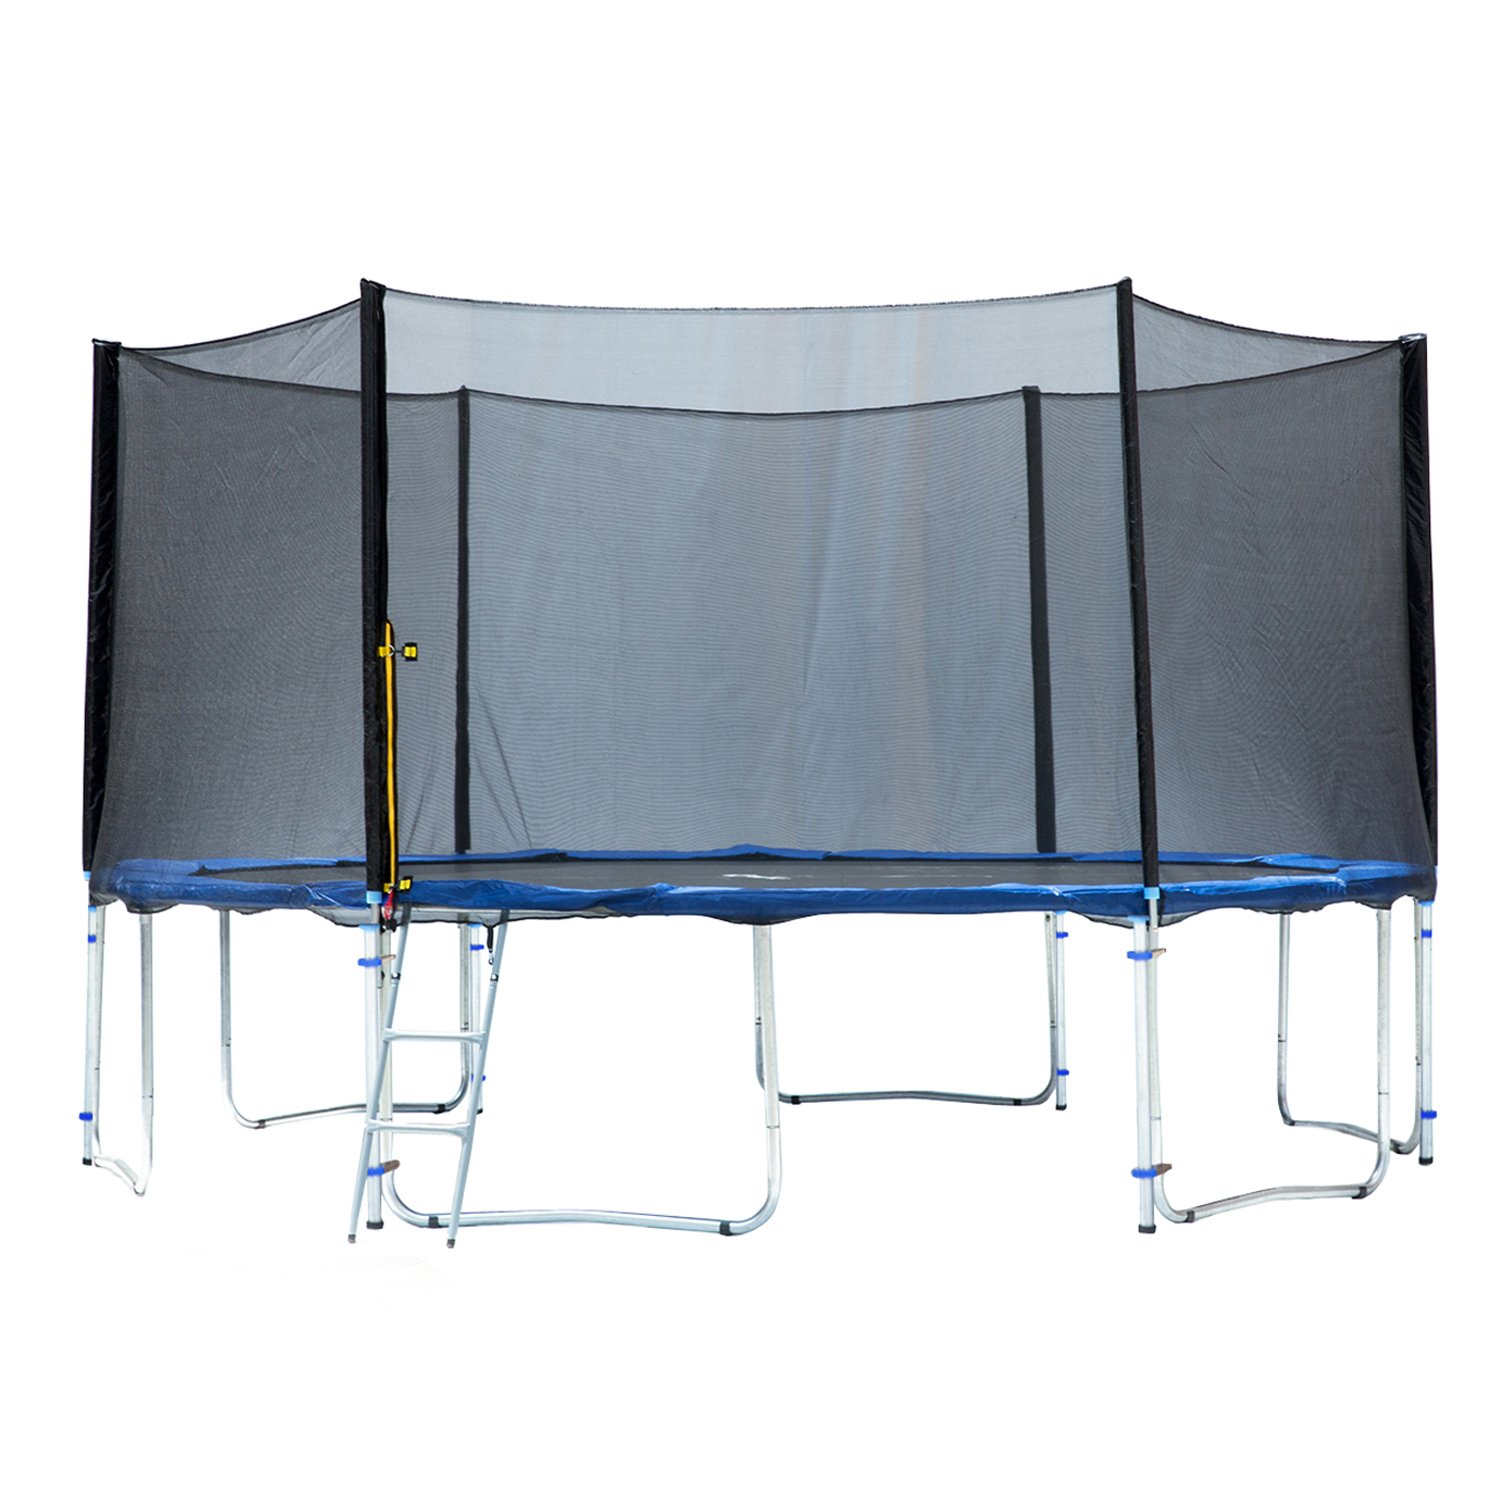 Exacme Trampoline for Adults Black Friday Deals